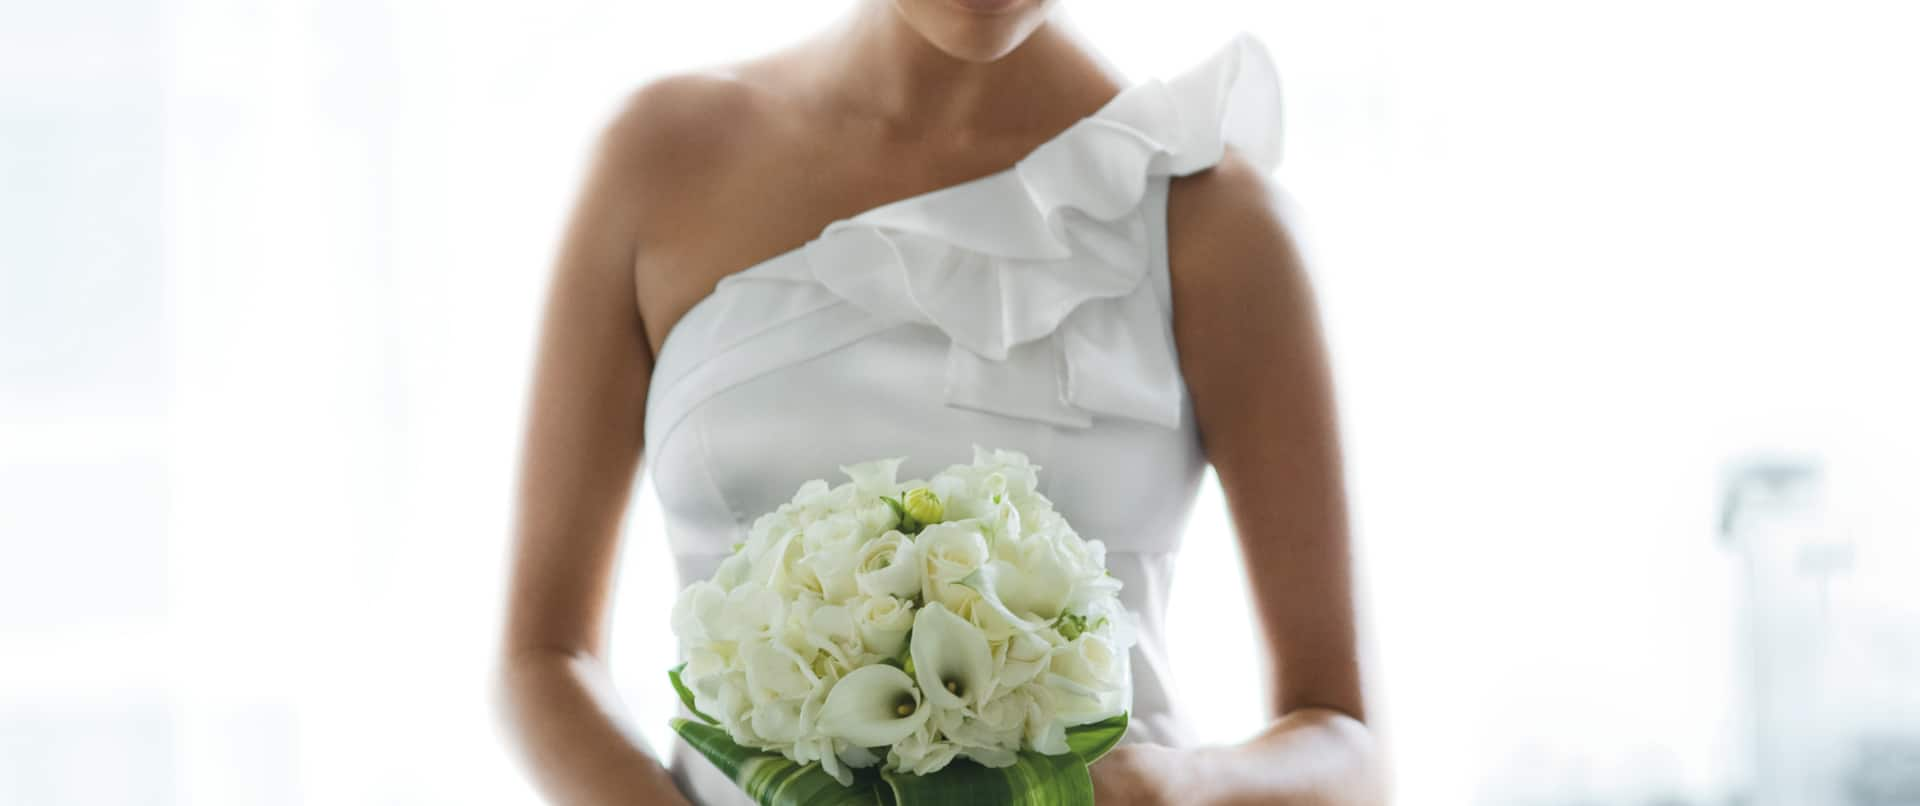 Brunette Bride With Closed Eyes Holding Bouquet of White Flowers Standing by Large Window